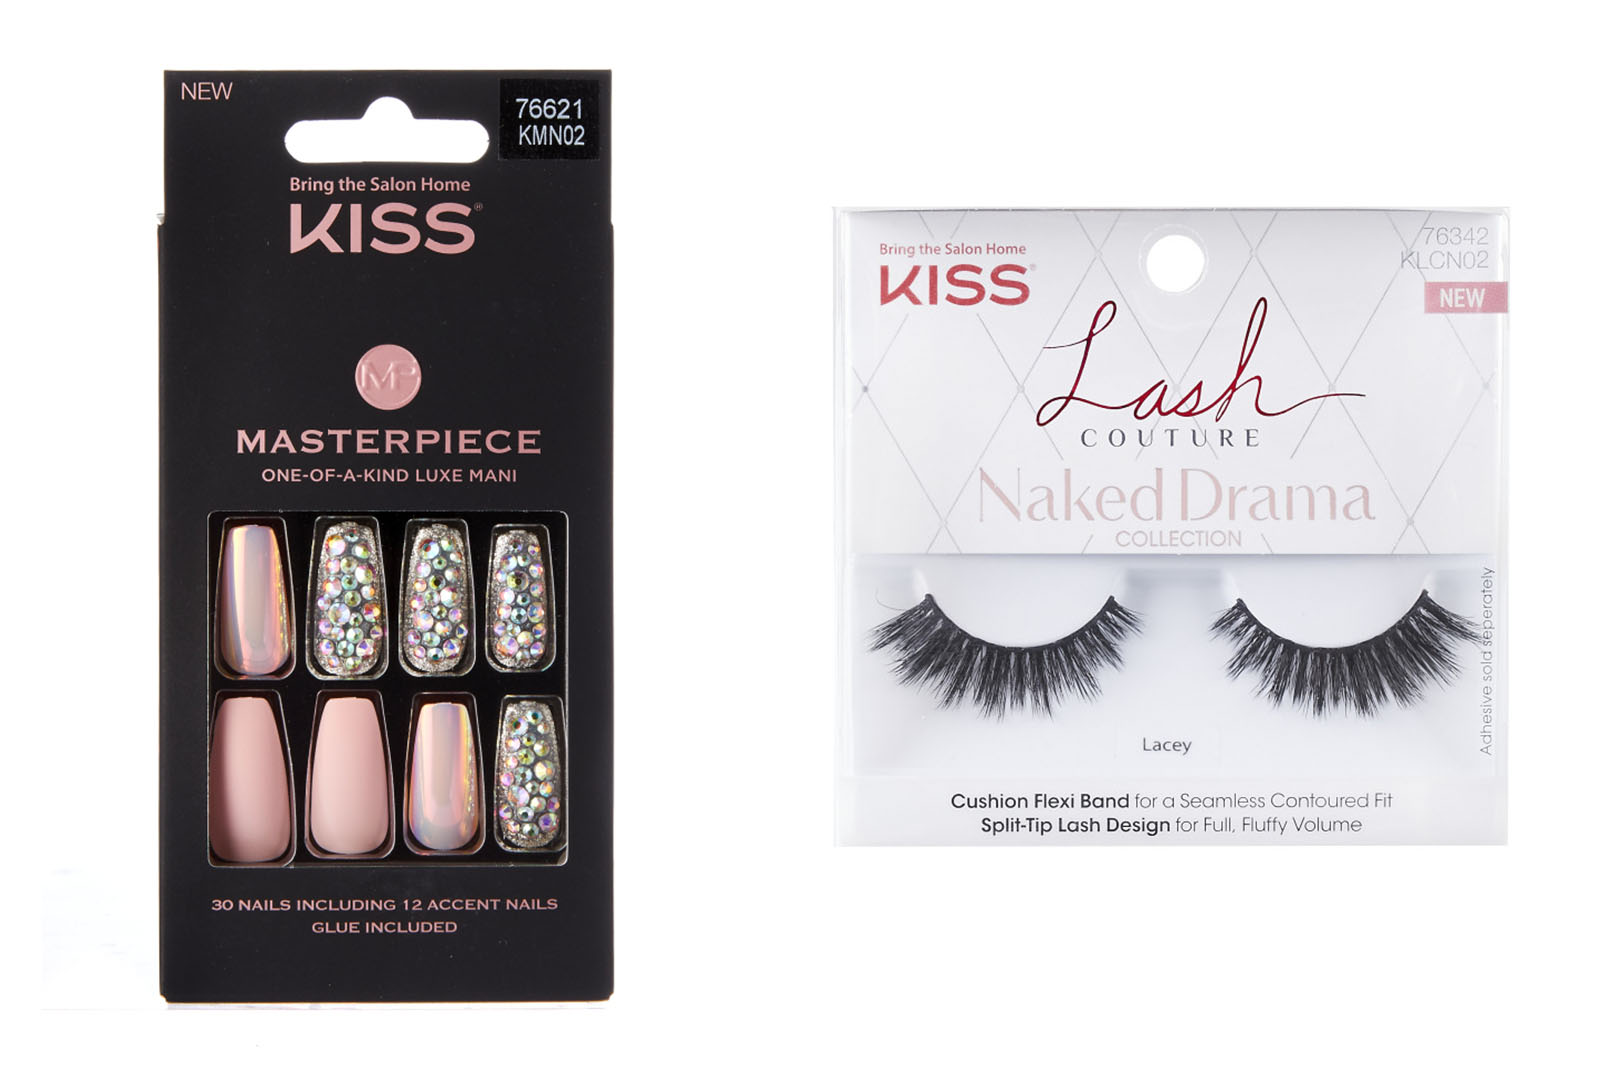 Kiss is launching its Masterpiece nails; New lashes from Kiss.